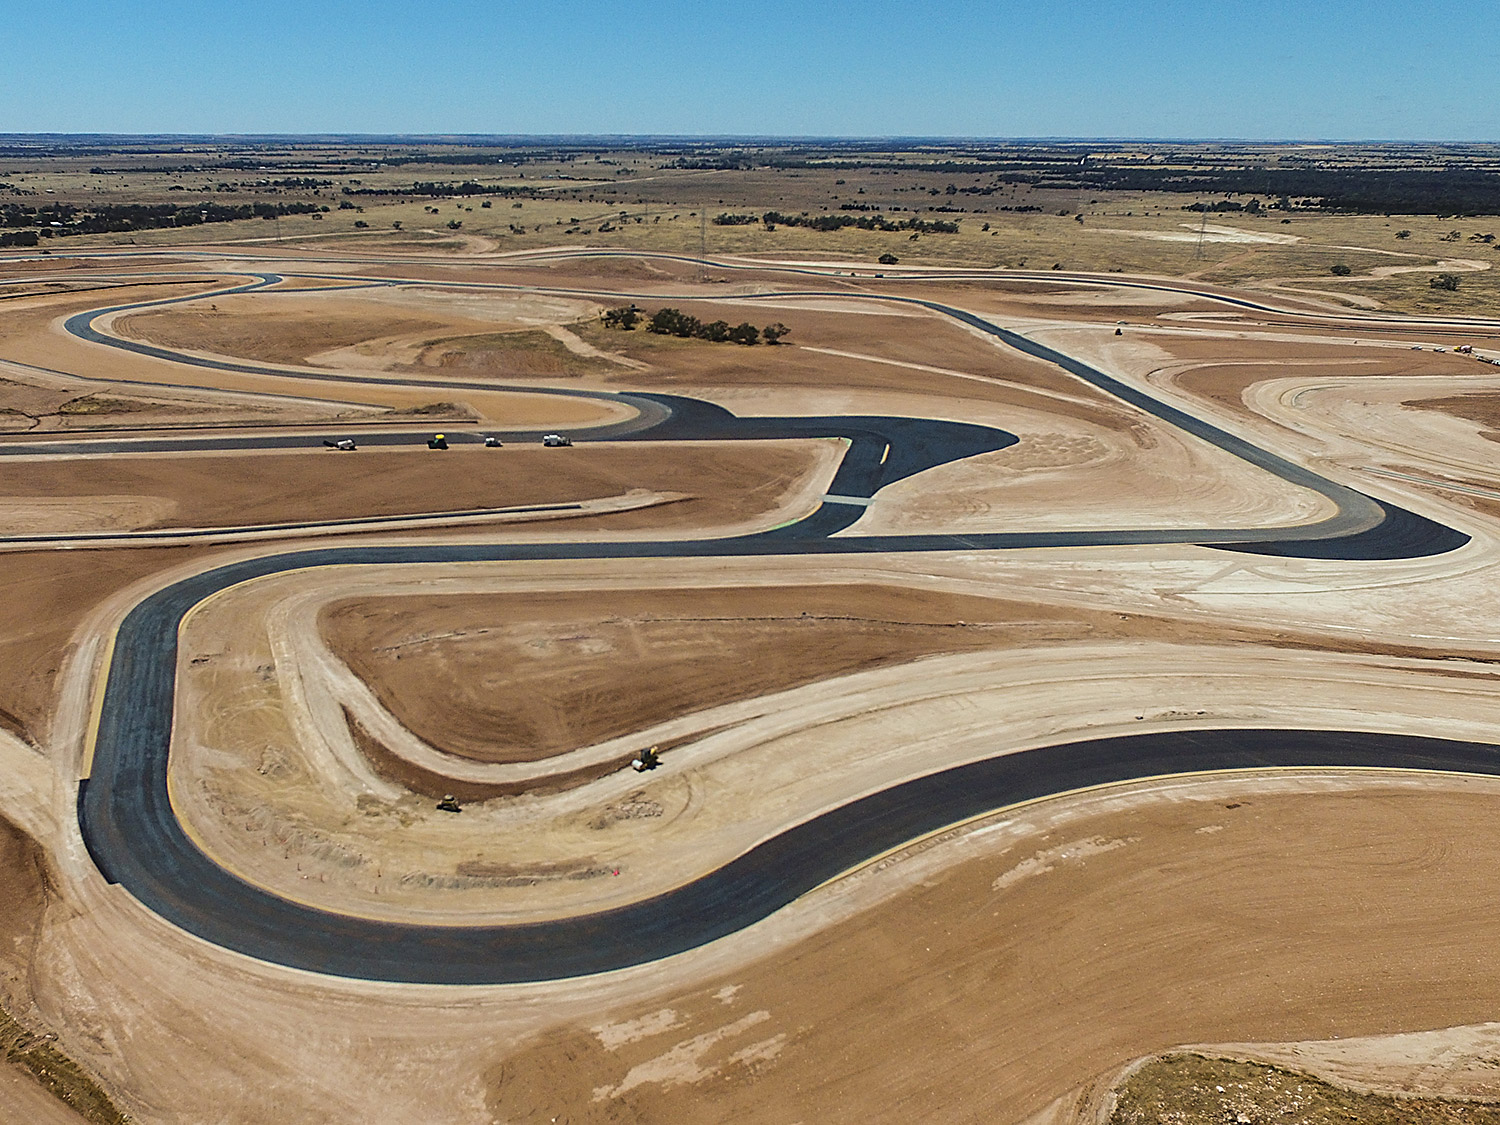 The Bend Motorsport Park drone circuit layout asphalt laid